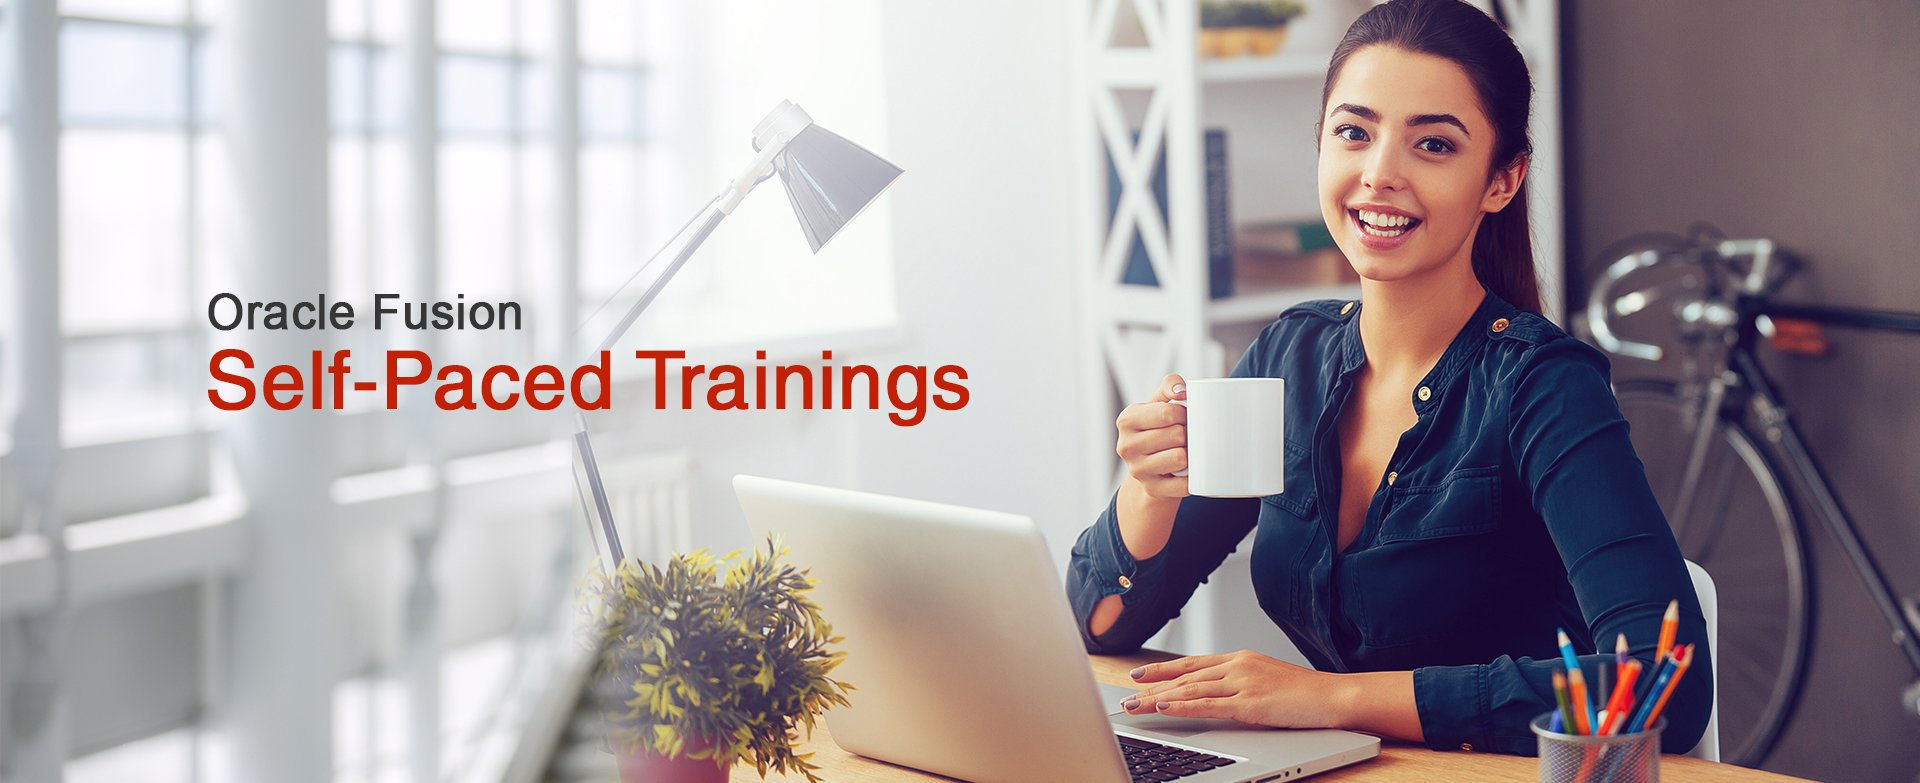 oracle-fusion-slef-paced-trainings